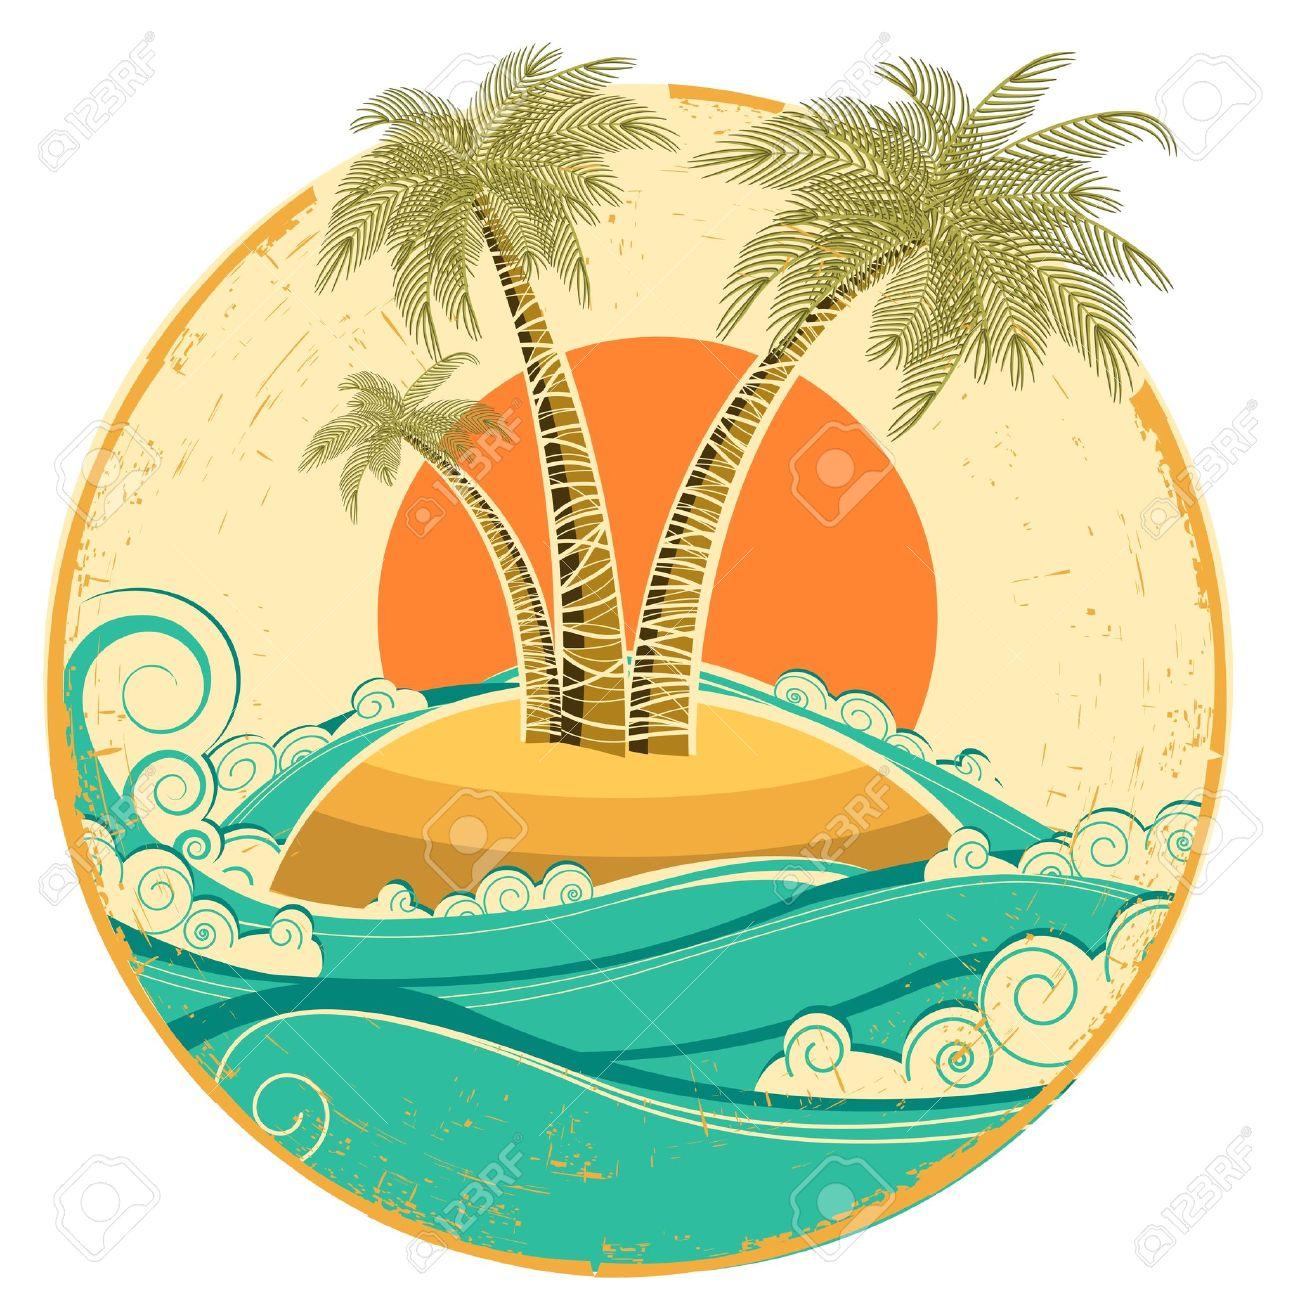 7,088 Hawaii Sign Stock Vector Illustration And Royalty Free ...